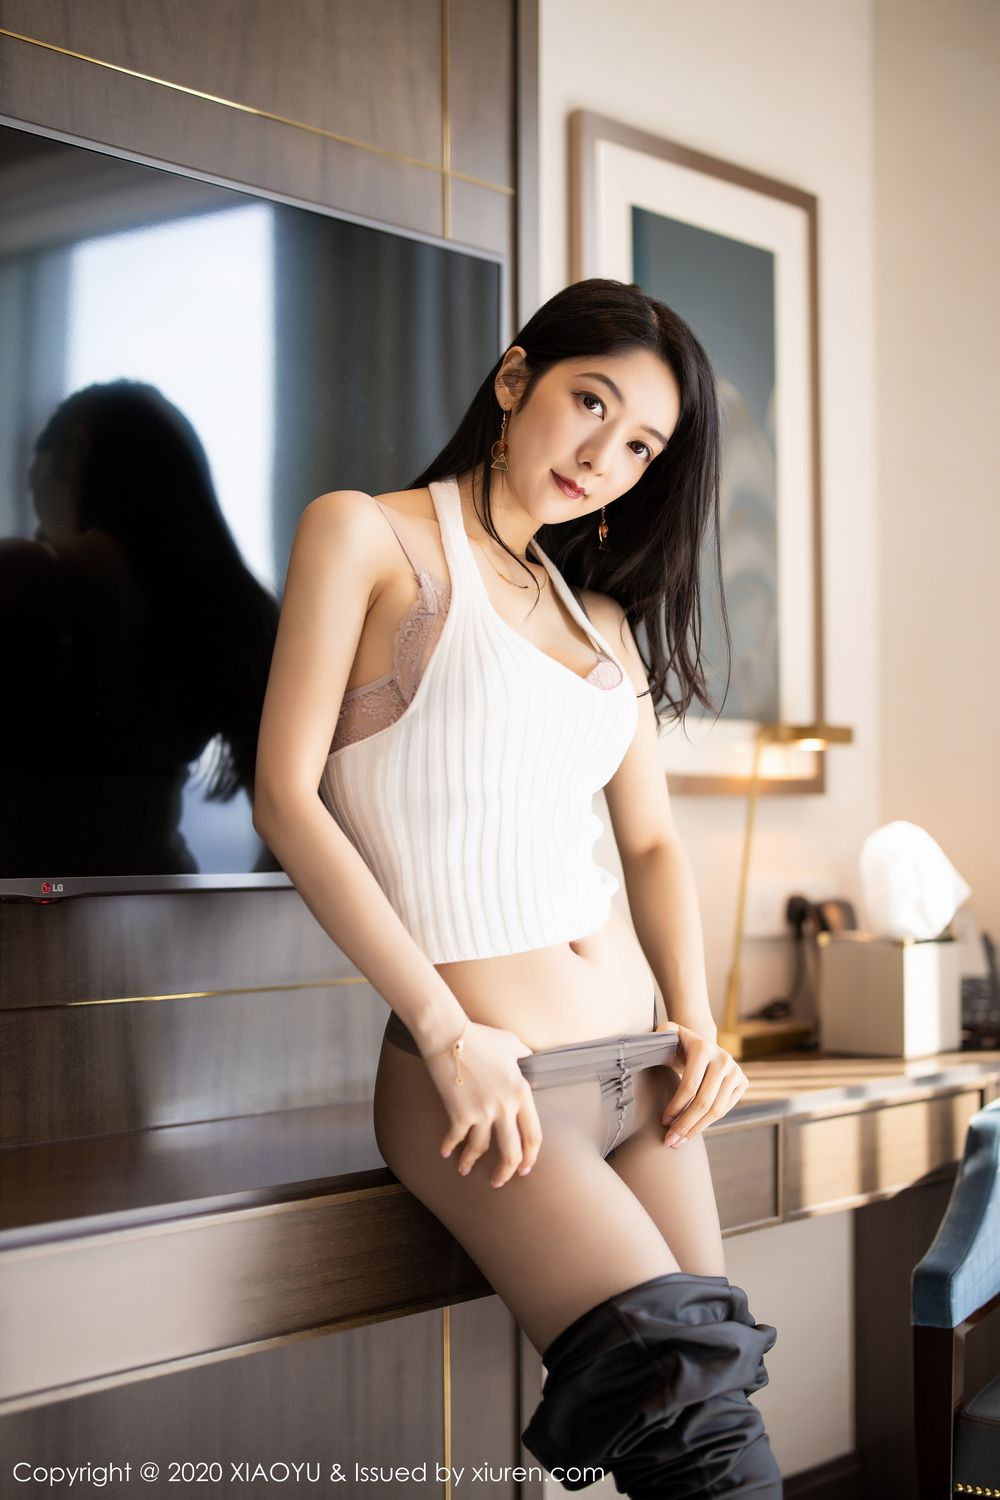 [XiaoYu] Vol.229 Xiao Re Ba 17P, Di Yi, Foot, Underwear, XiaoYu